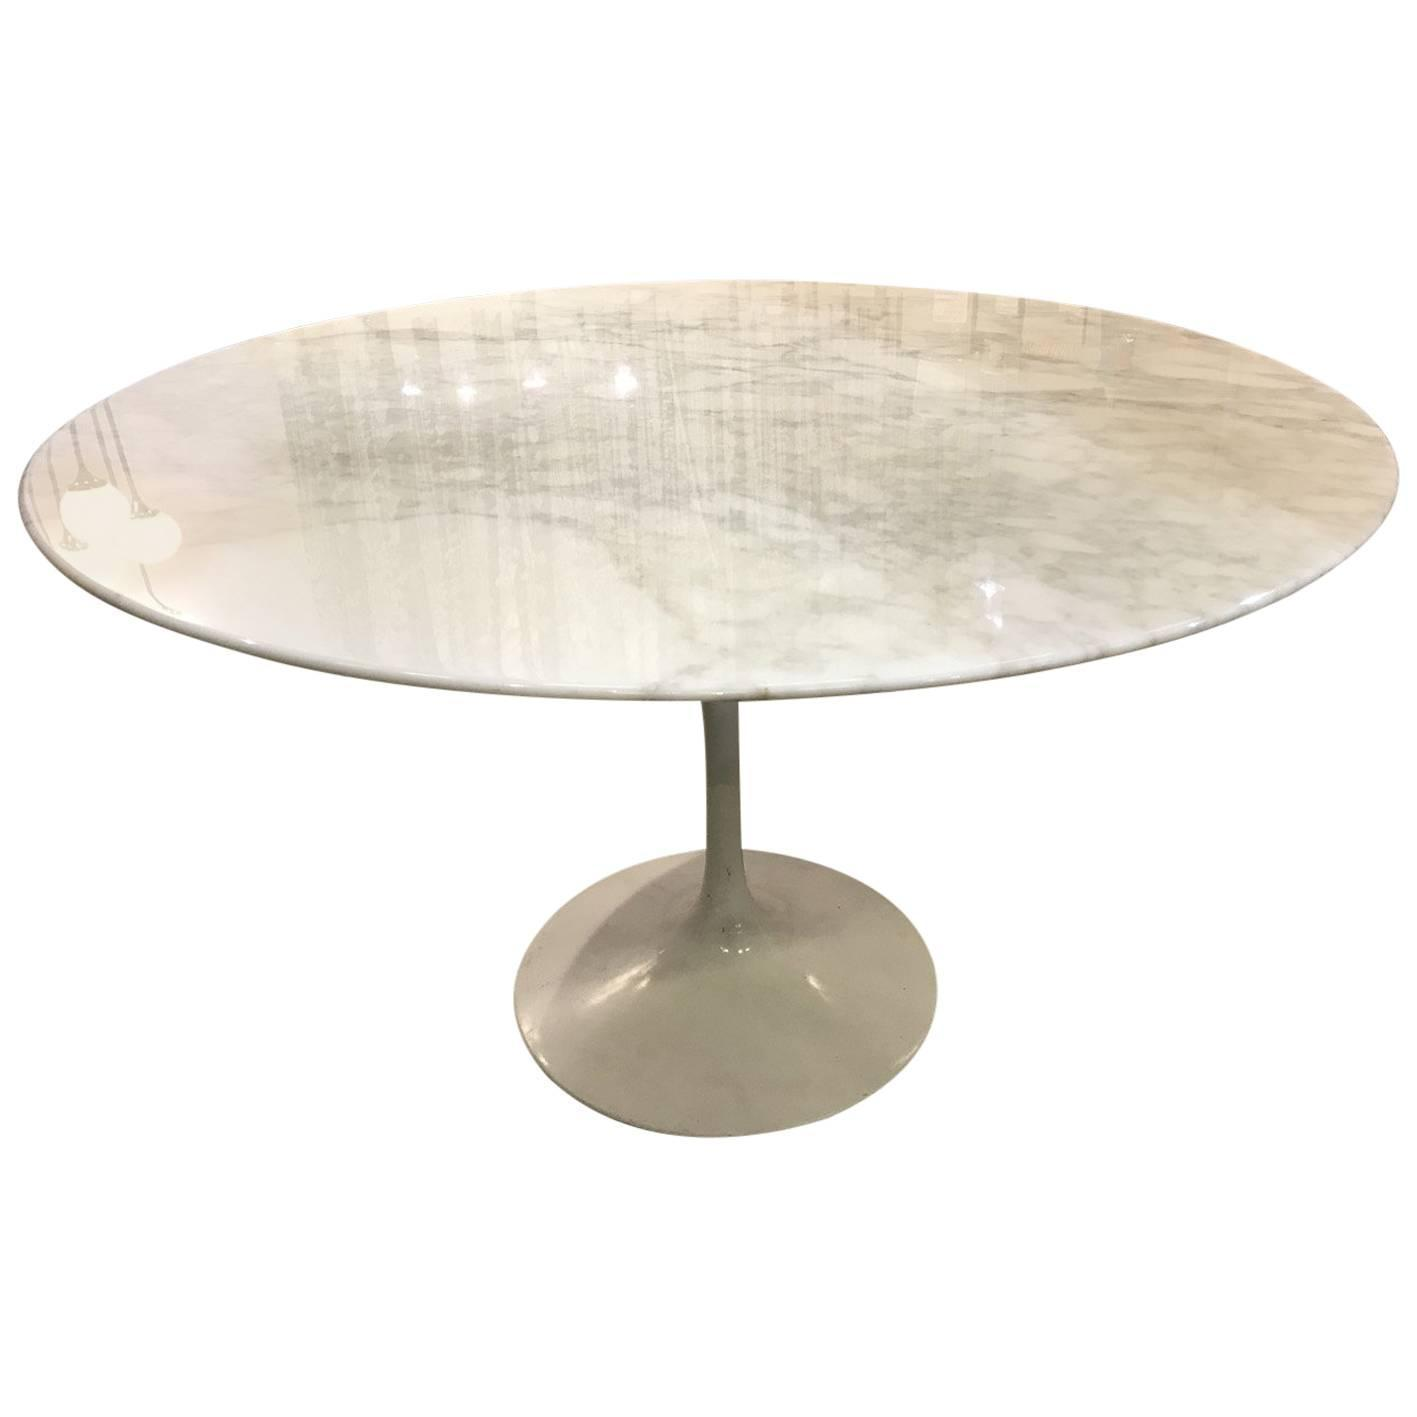 Eero Saarinen Calacatta Marble Tulip Table Knoll Edition at 1stdibs